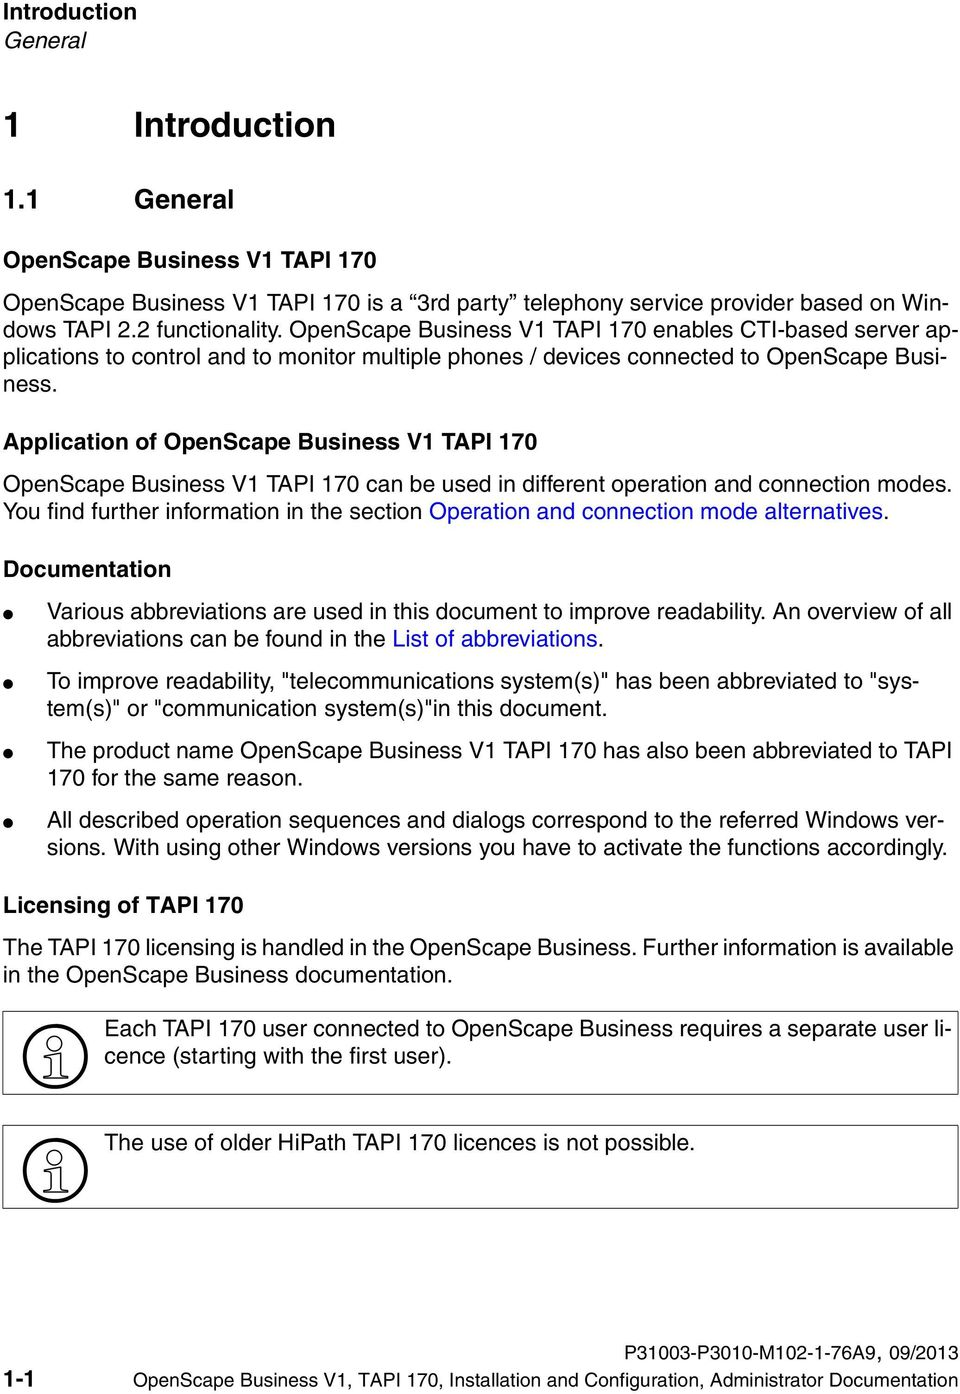 OpenScape Business V1 TAPI 170 enables CTI-based server applications to control and to monitor multiple phones / devices connected to OpenScape Business.